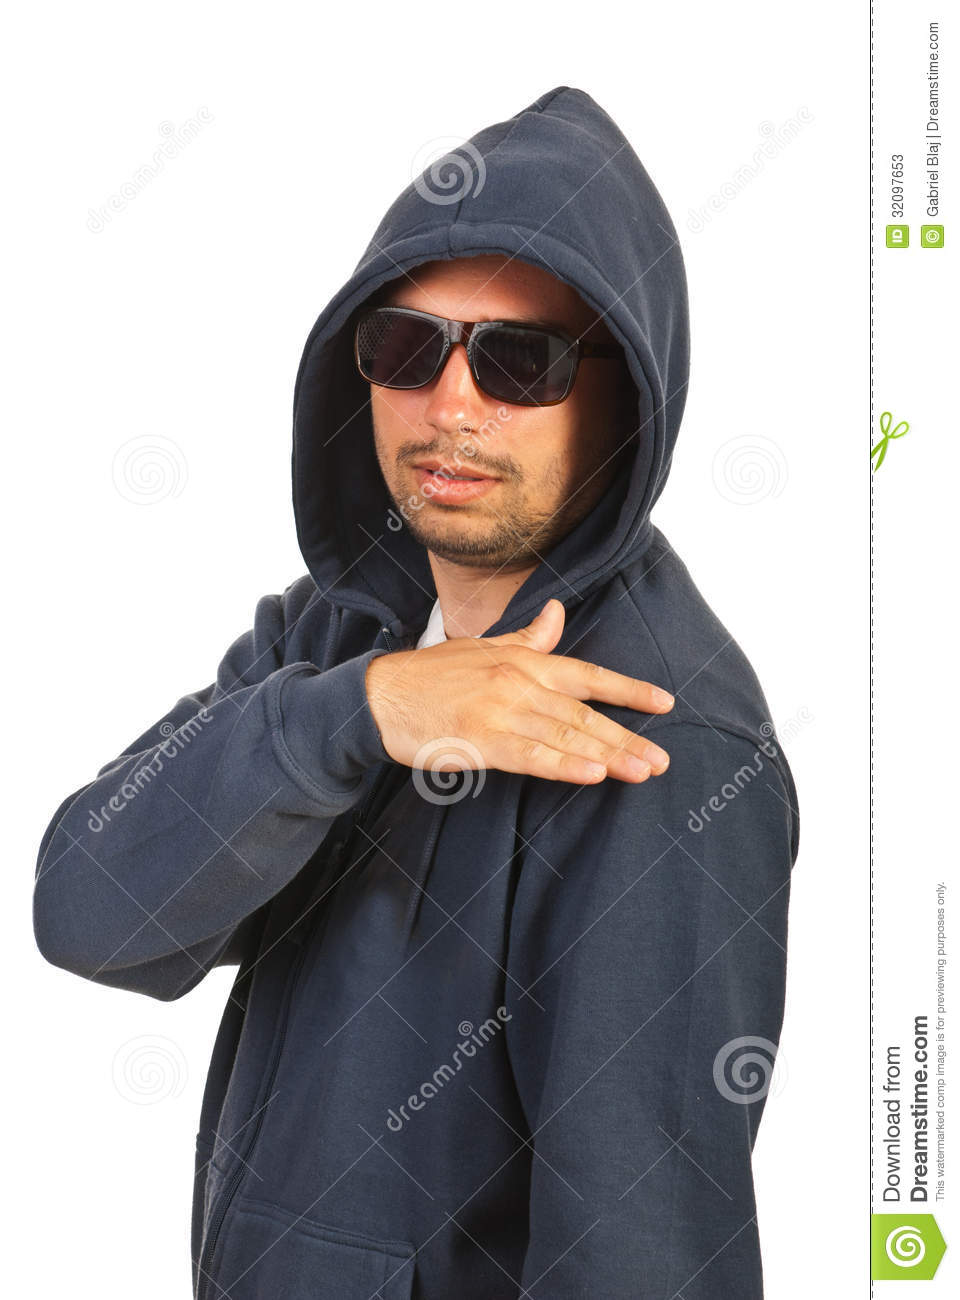 5b2c47a7997 Rapper Man With Hood And Sunglasses Stock Image - Image of male ...